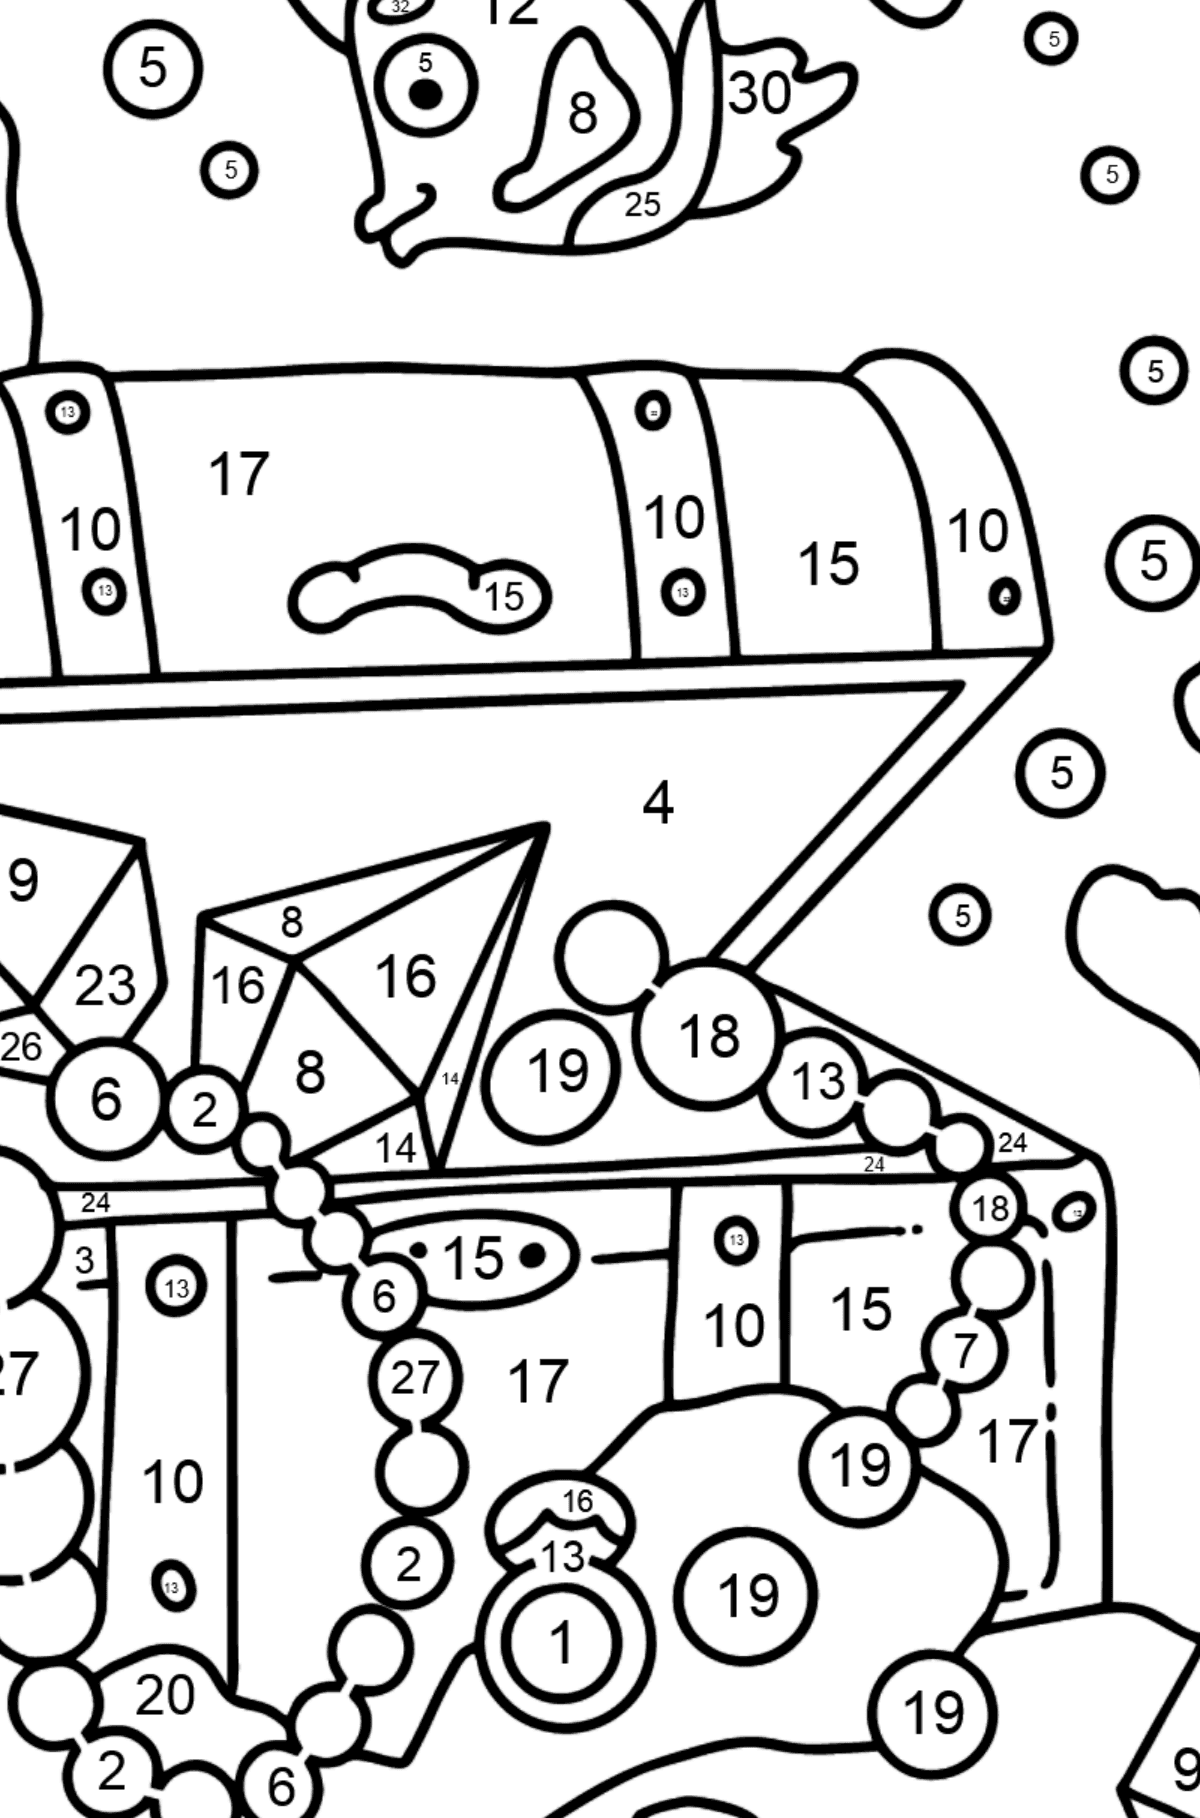 Coloring Page - A Fish is Taking a Peek at a Treasure - Coloring by Numbers for Kids